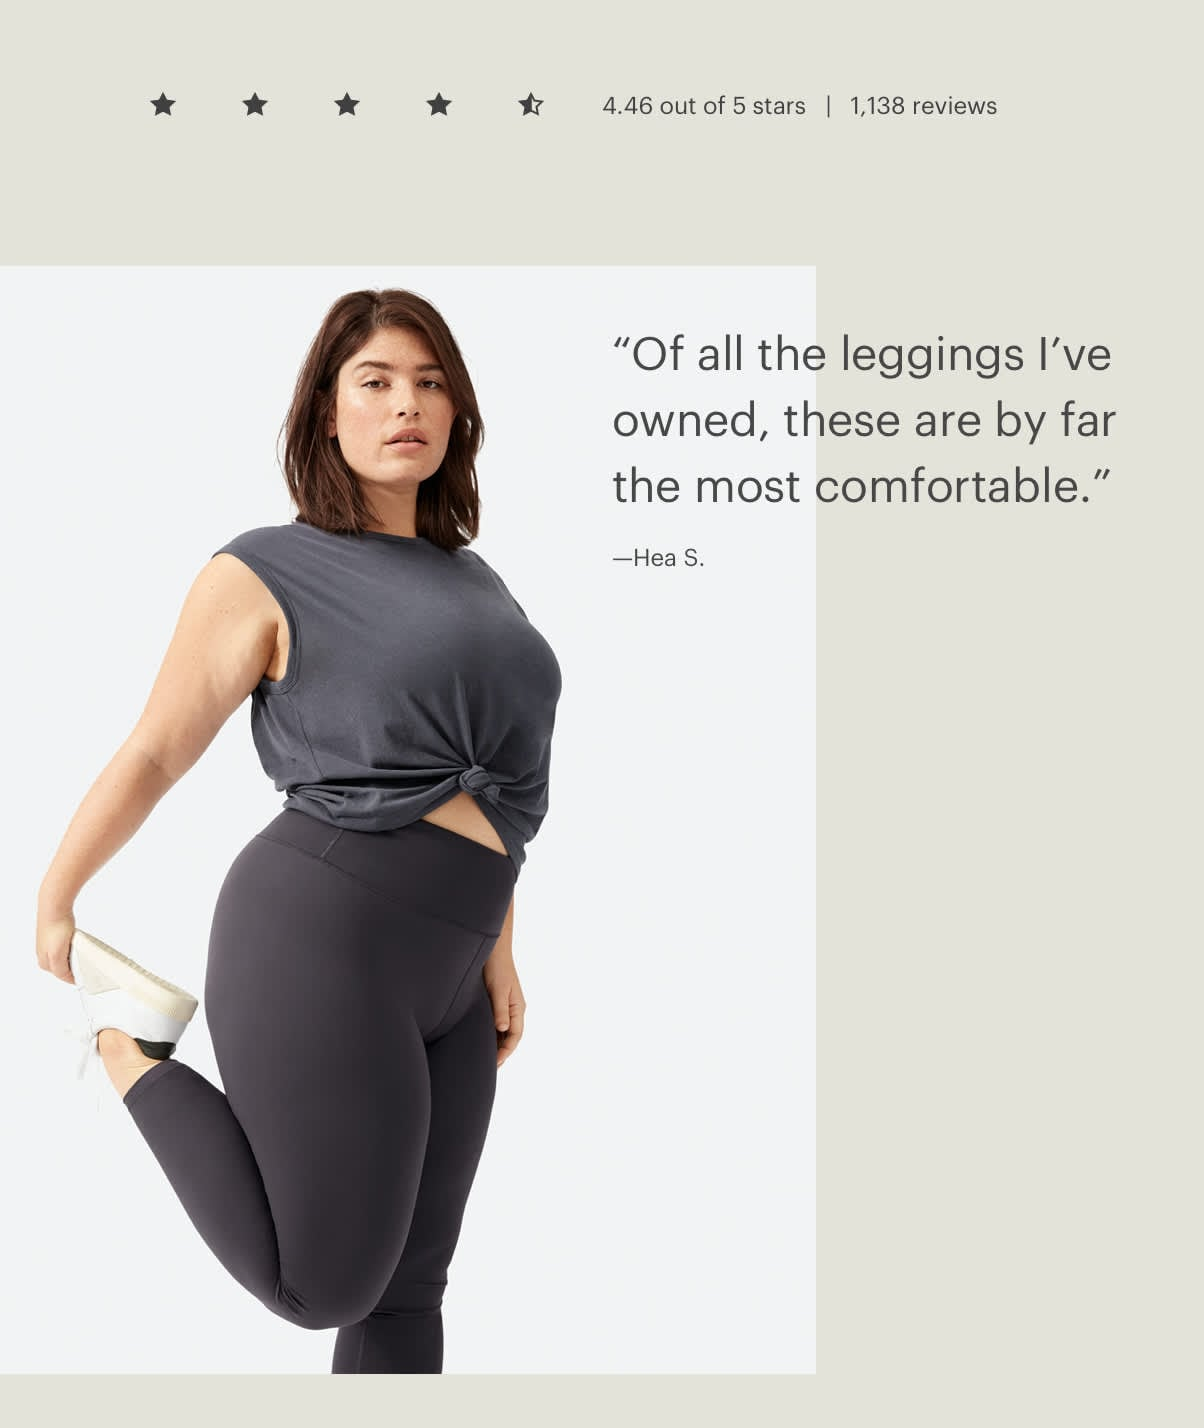 Of all the leggings I've owned, these are by far the most comfortable. - Hea S.